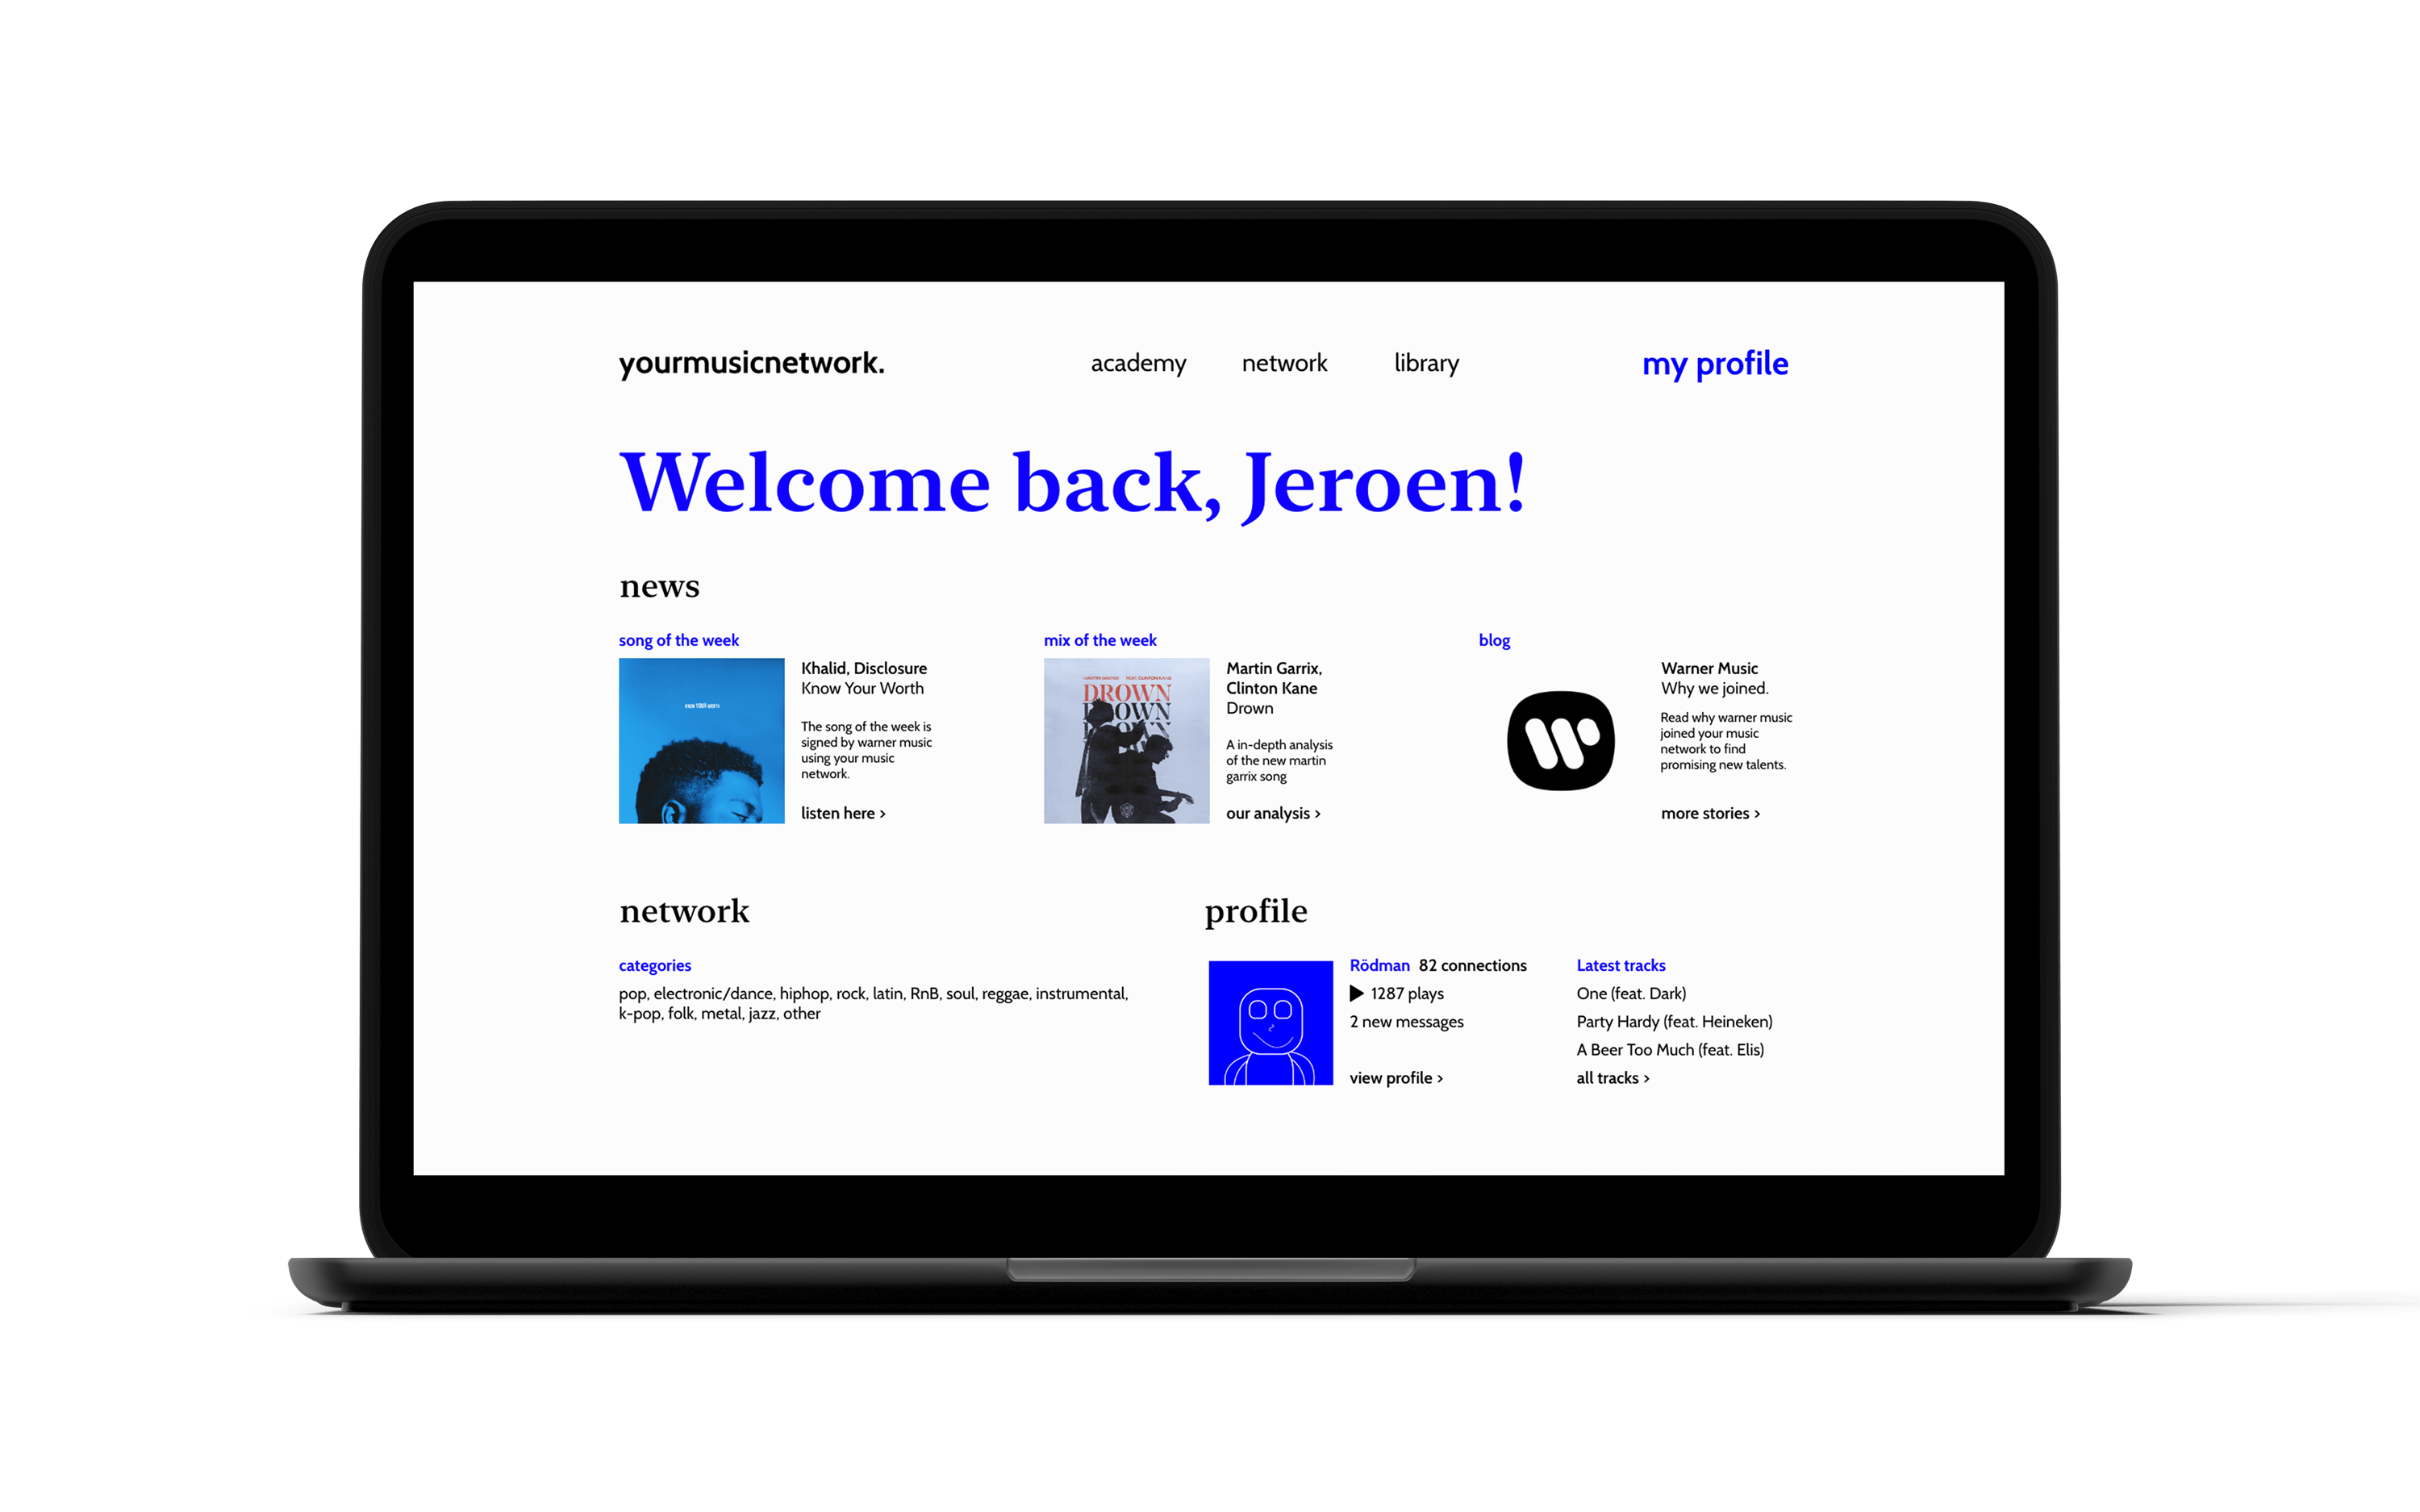 your music network profile